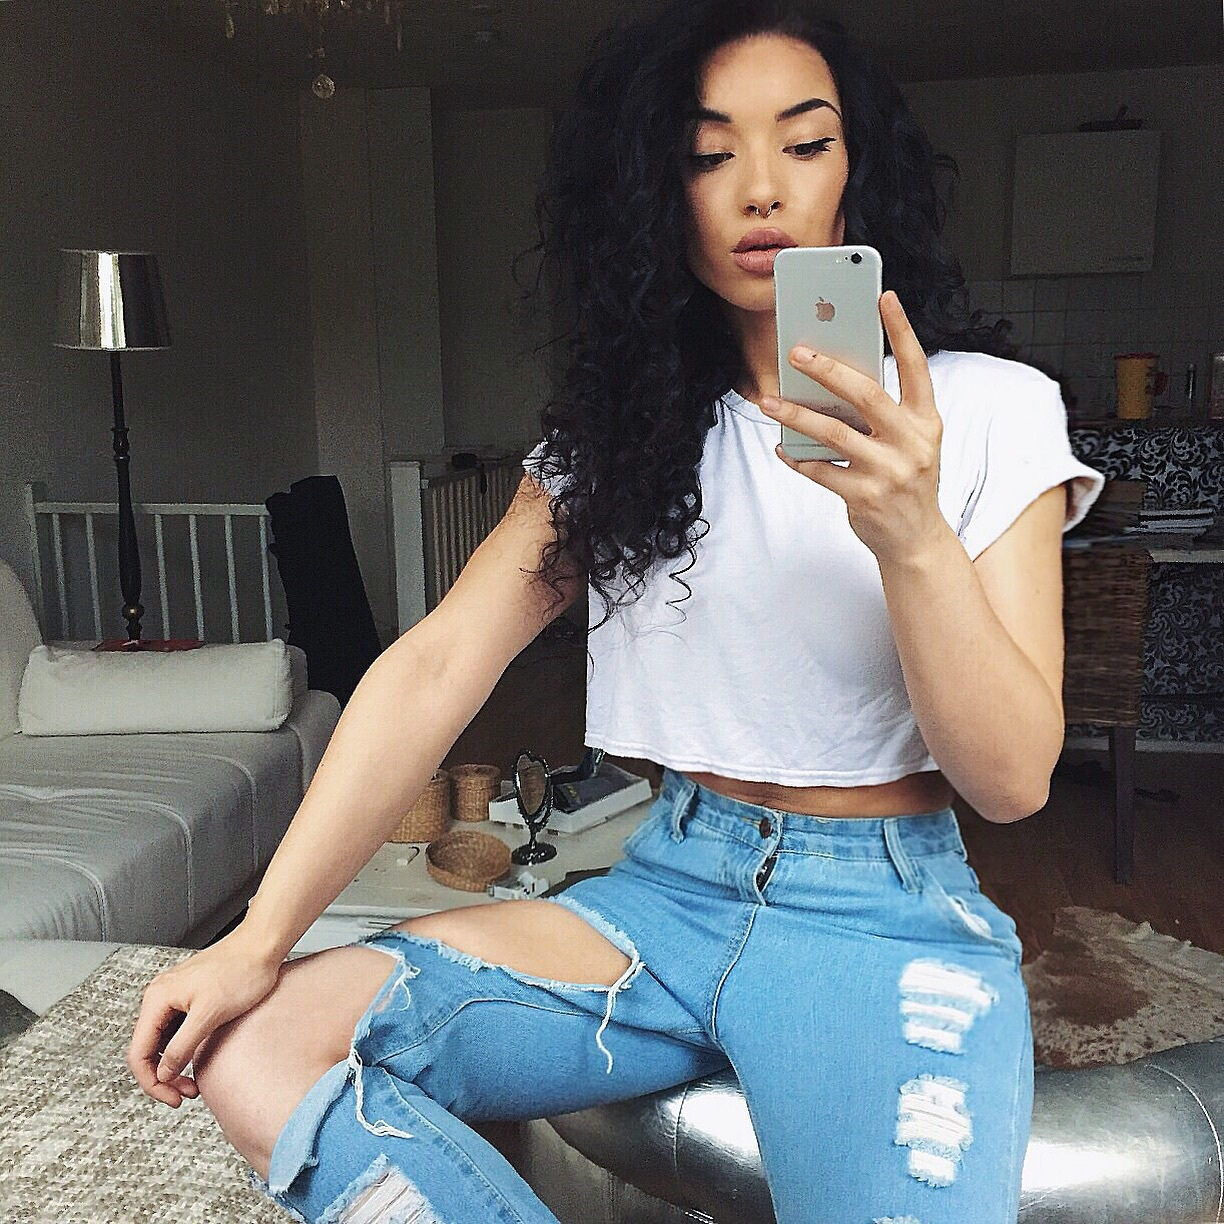 Girls Beautiful with curls tumblr exclusive photo